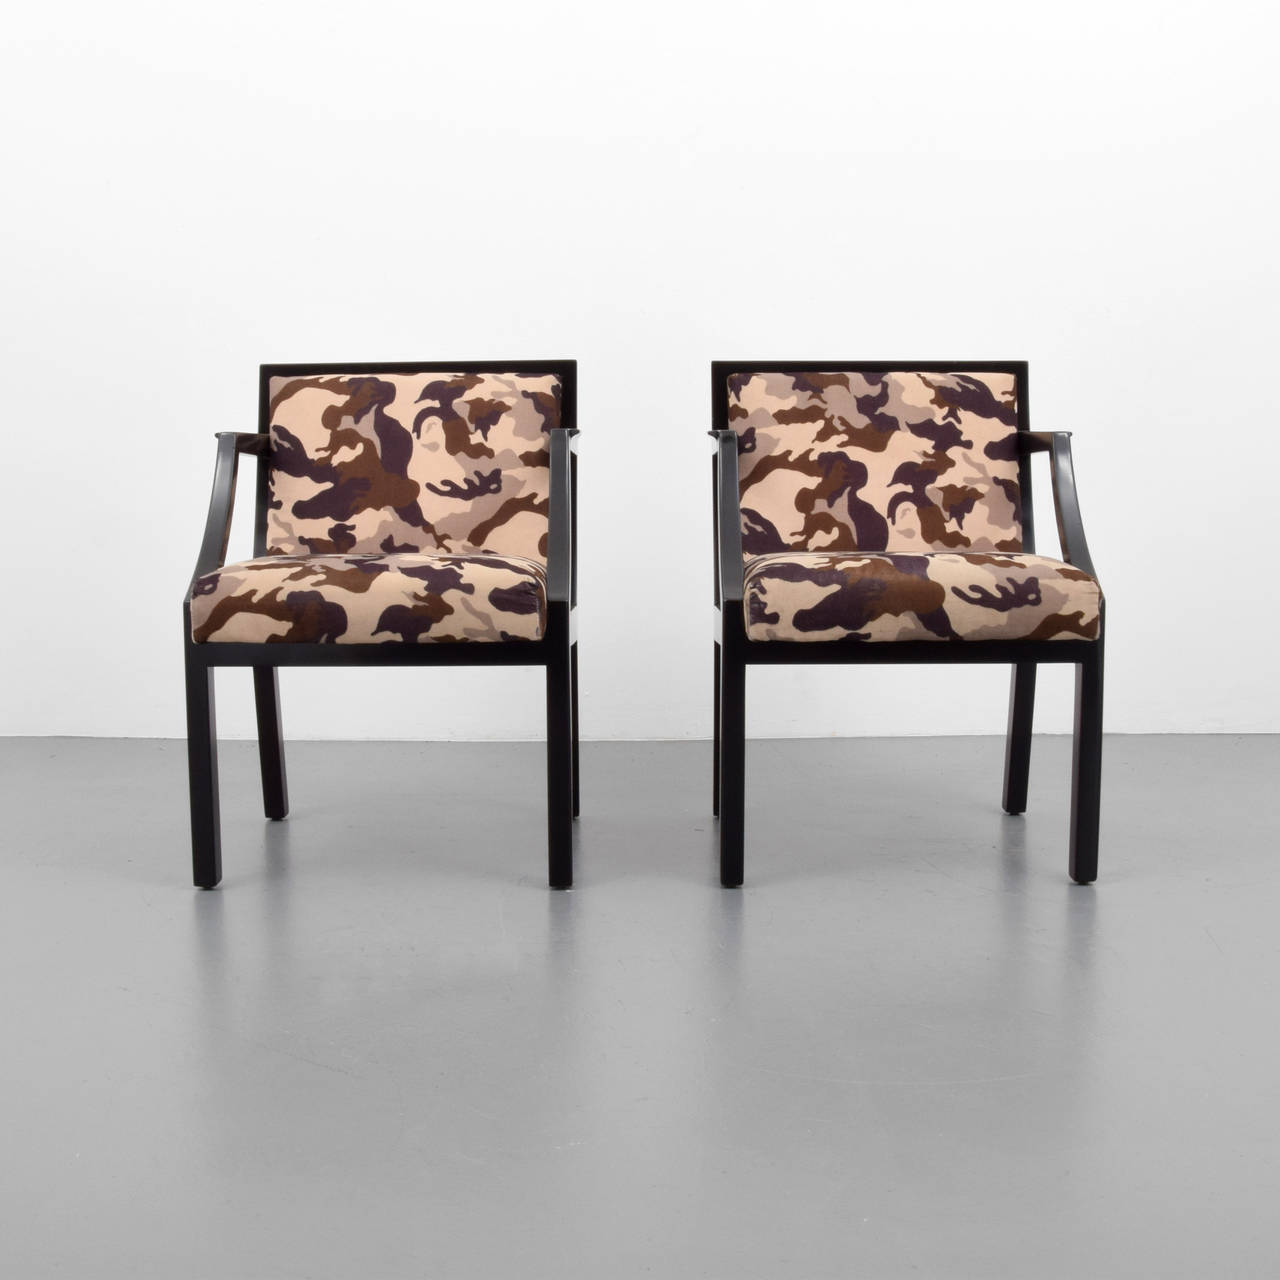 Pair of chairs by edward wormley for dunbar on antique row west palm beach florida - Edward wormley chairs ...